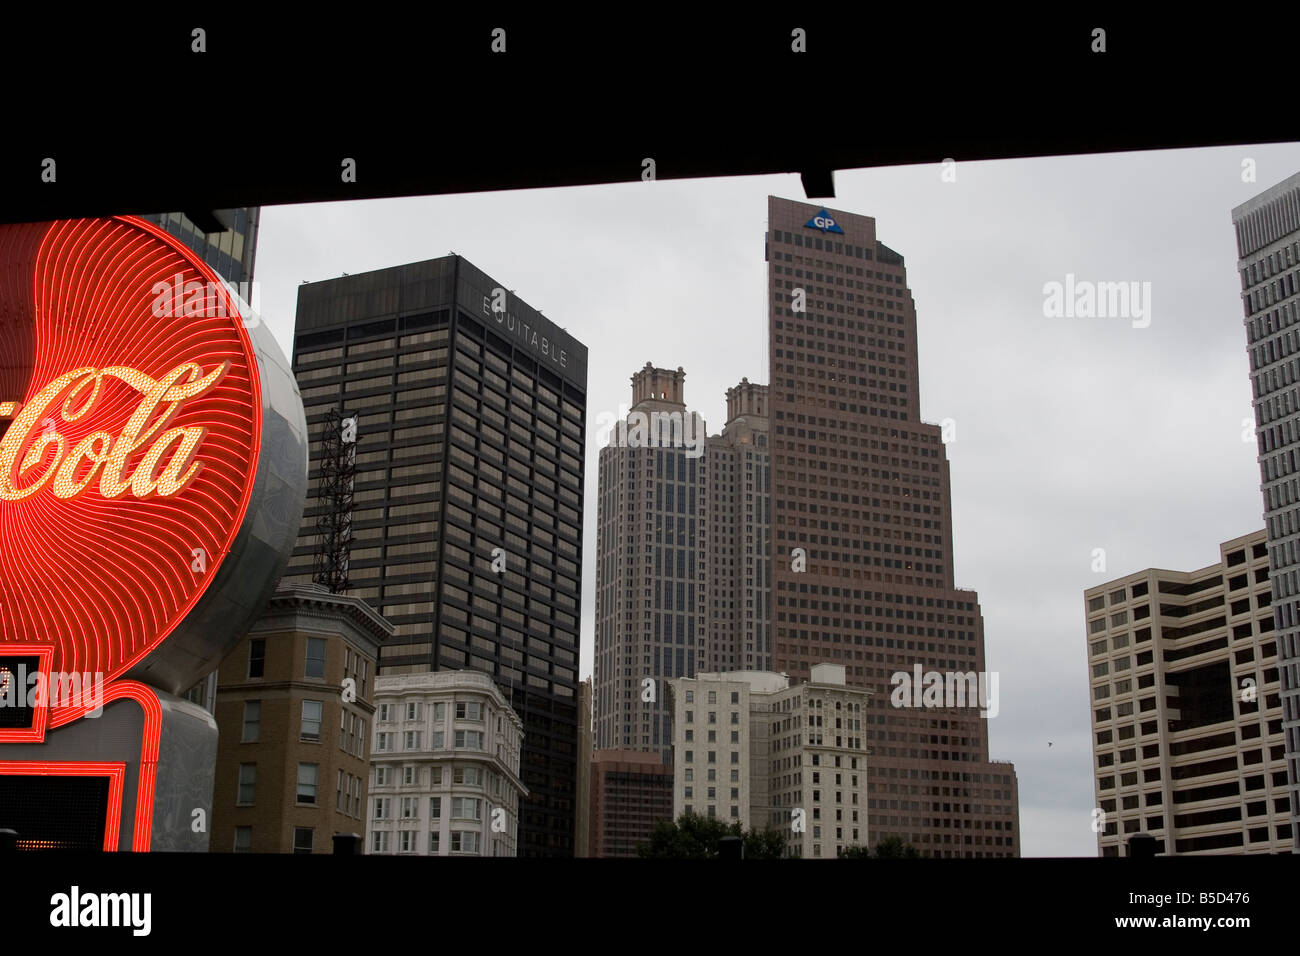 downtown Atlanta buildings skyscrapers equitable GP Cola business offices office Overcast building sign city urban - Stock Image